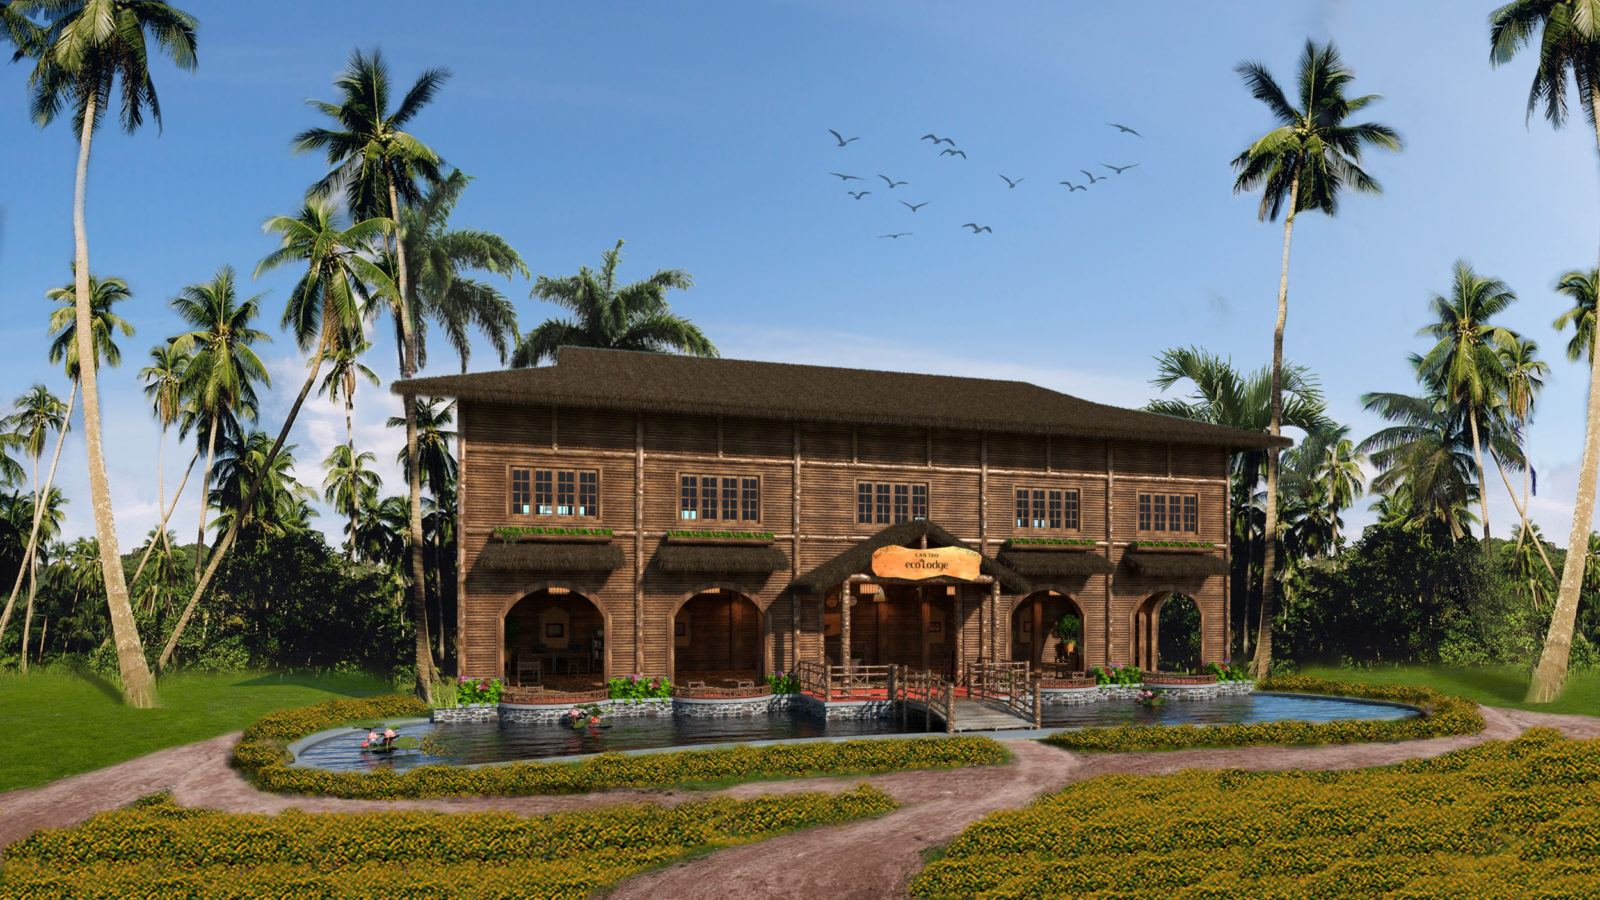 The Mekong Delta welcomes Can Tho Ecolodge, an Eco luxury accommodation in South Vietnam